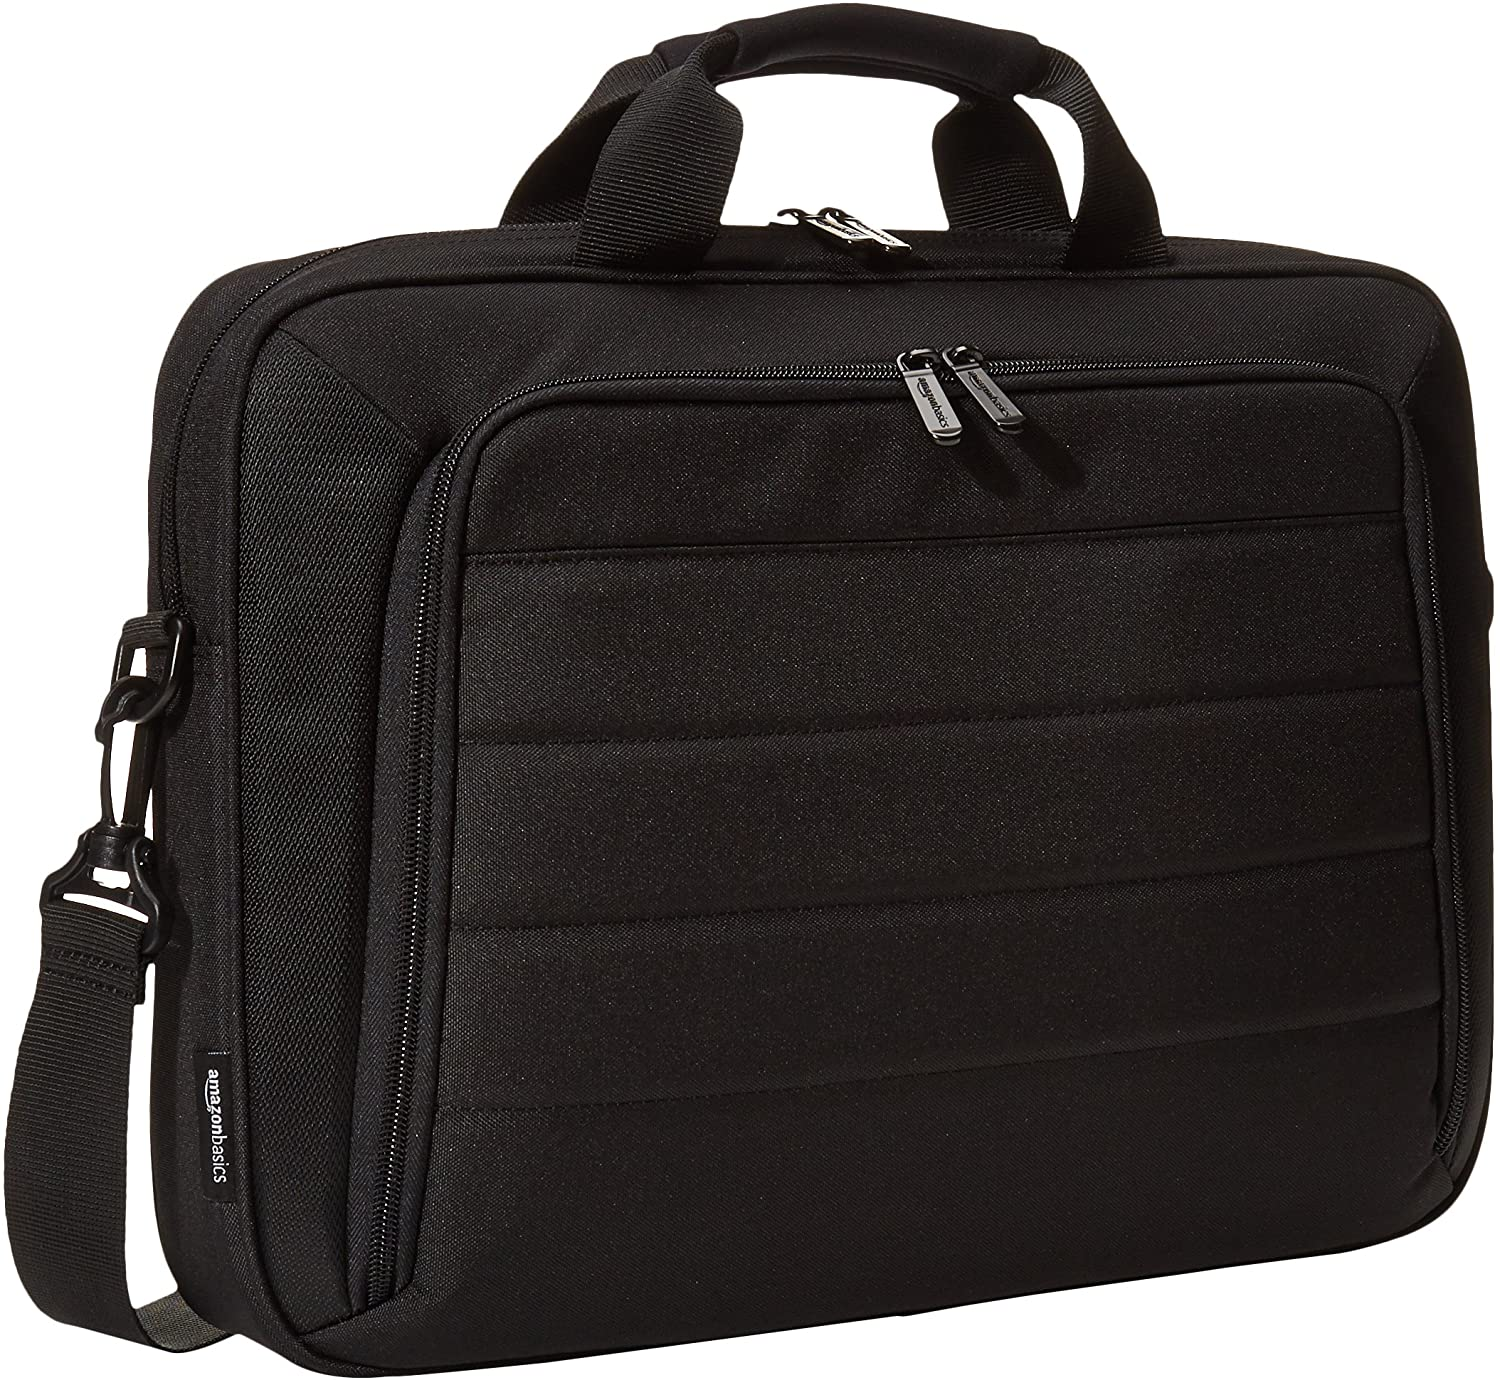 AmazonBasics 15.6 Inch Laptop and Tablet Case, Black, 5-Pack